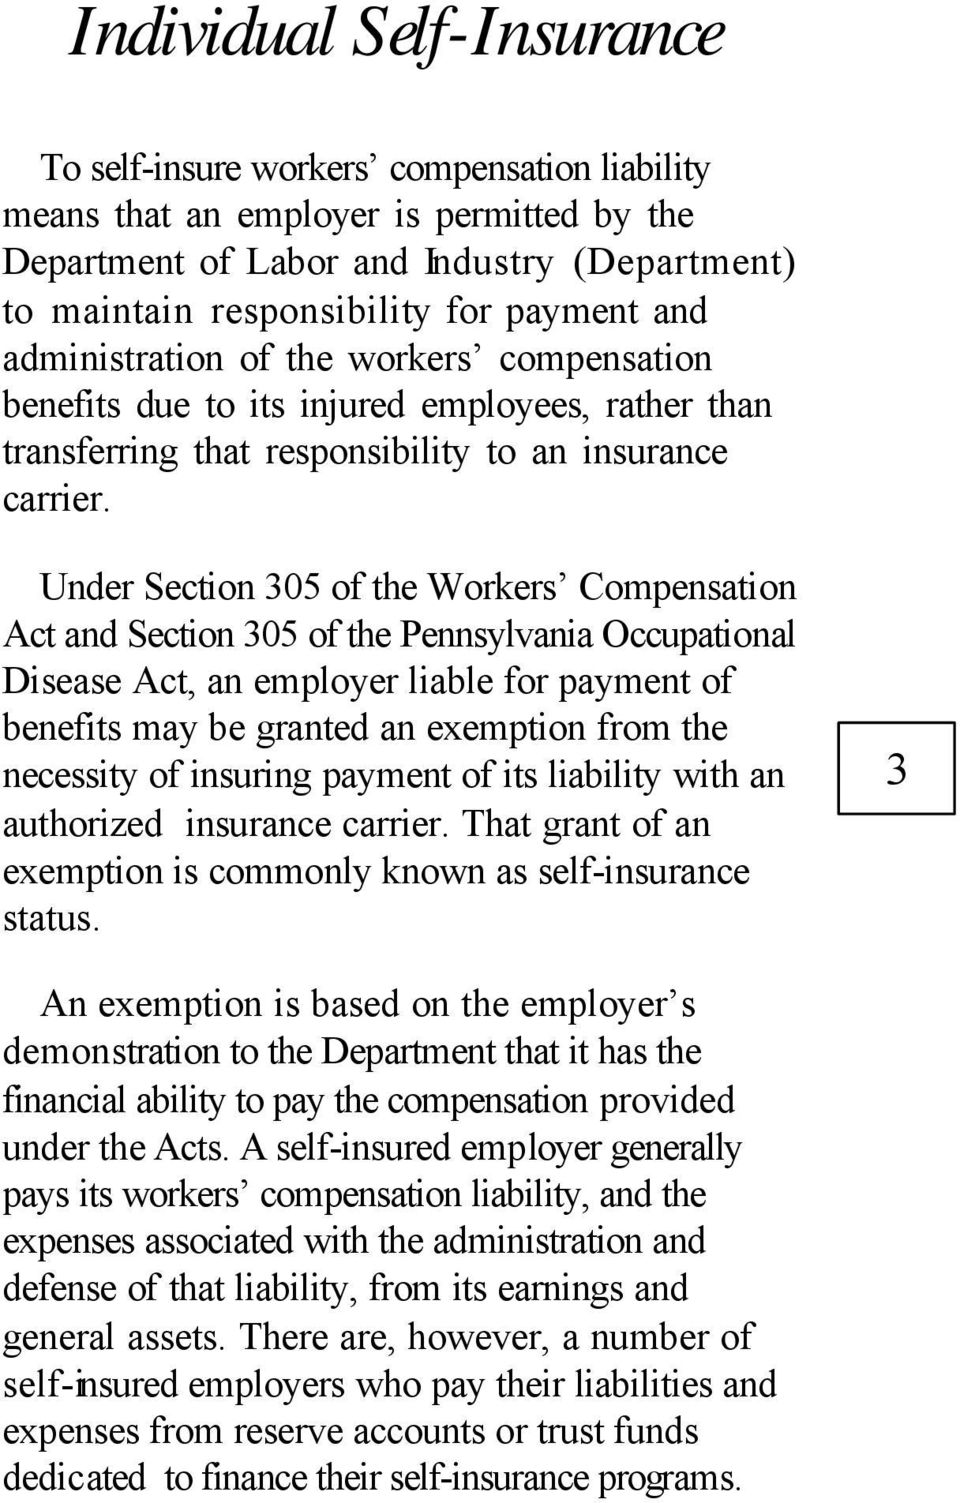 Under Section 305 of the Workers Compensation Act and Section 305 of the Pennsylvania Occupational Disease Act, an employer liable for payment of benefits may be granted an exemption from the